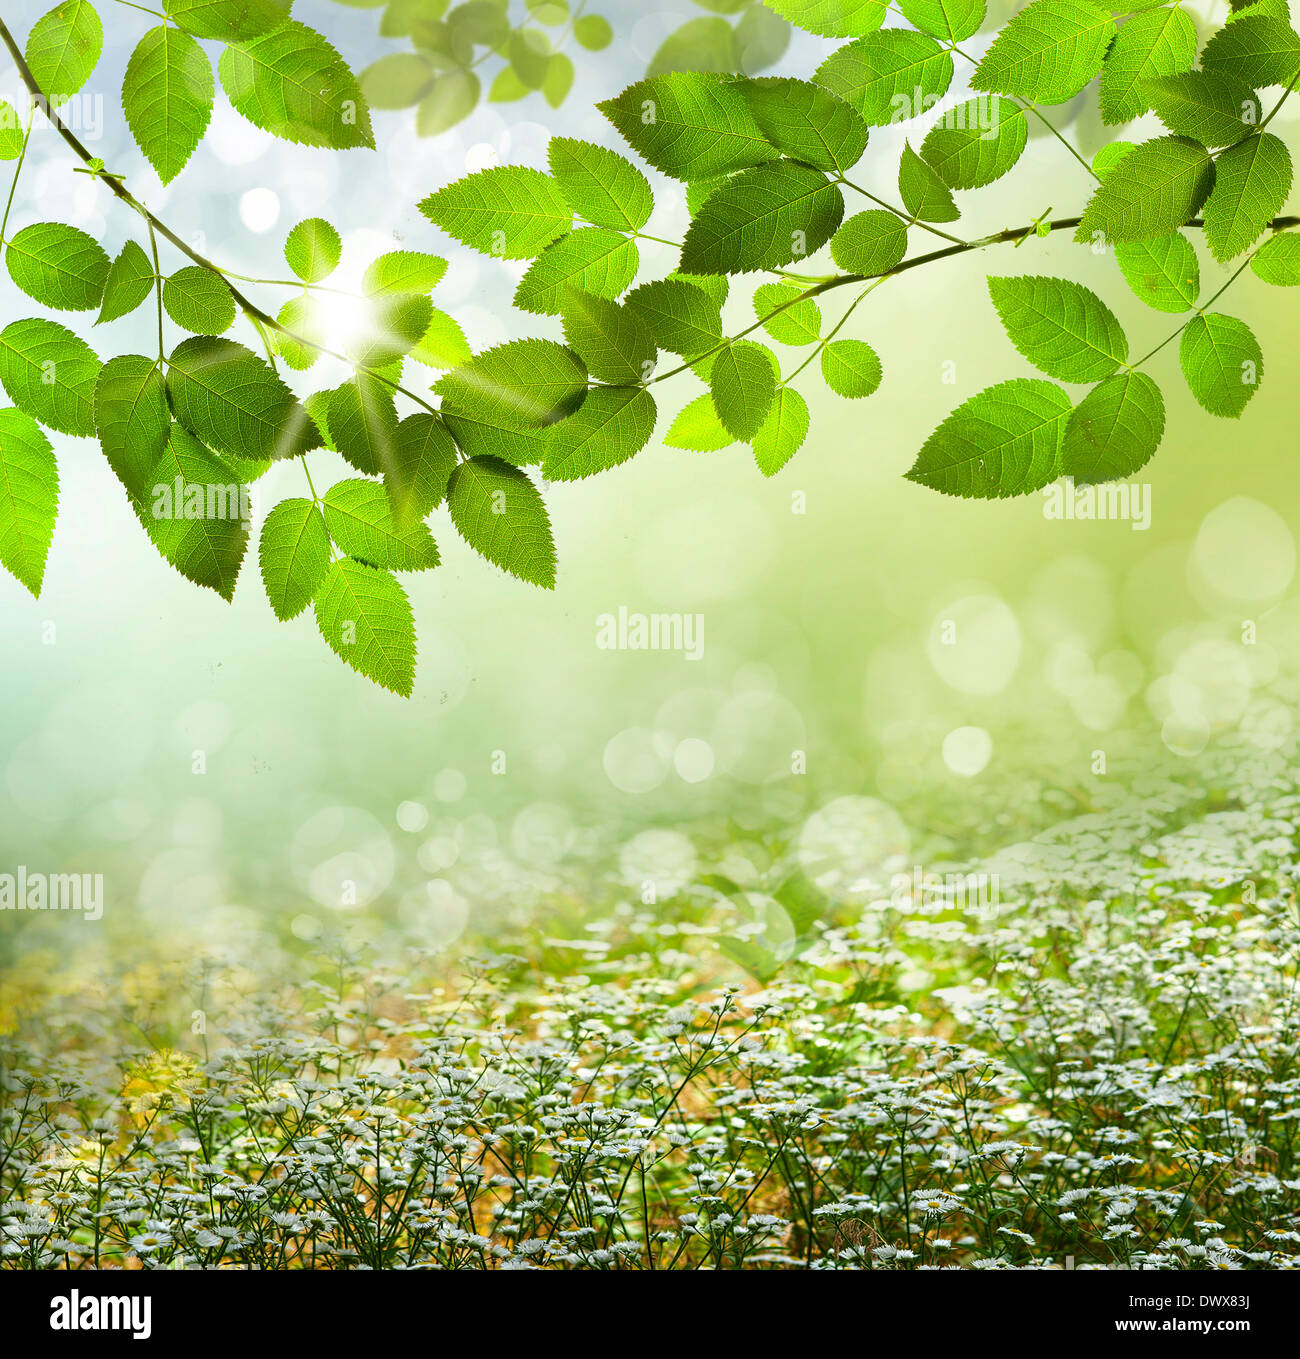 Spring or summer season abstract nature background with grass and blue sky in the back Stock Photo